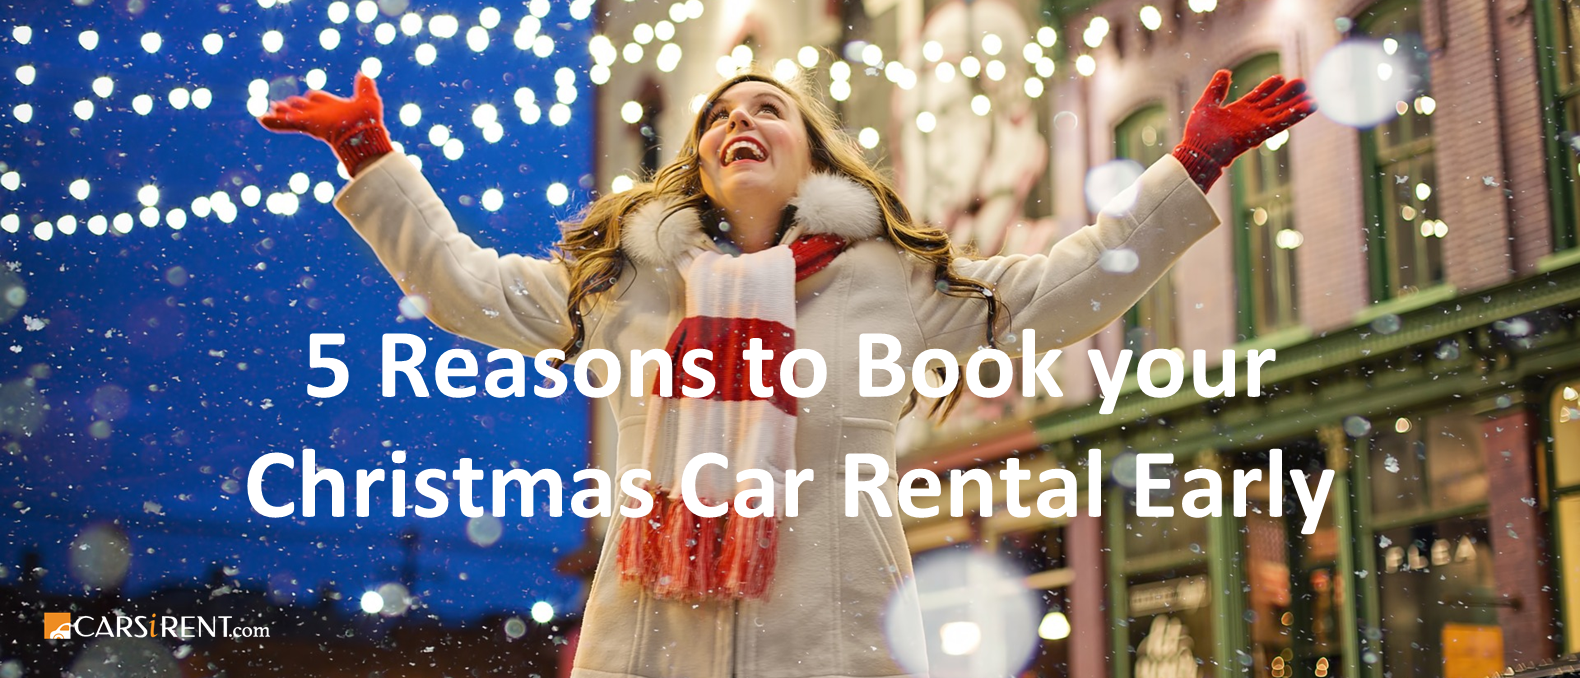 5 Reasons to Book your Christmas Car Rental Early